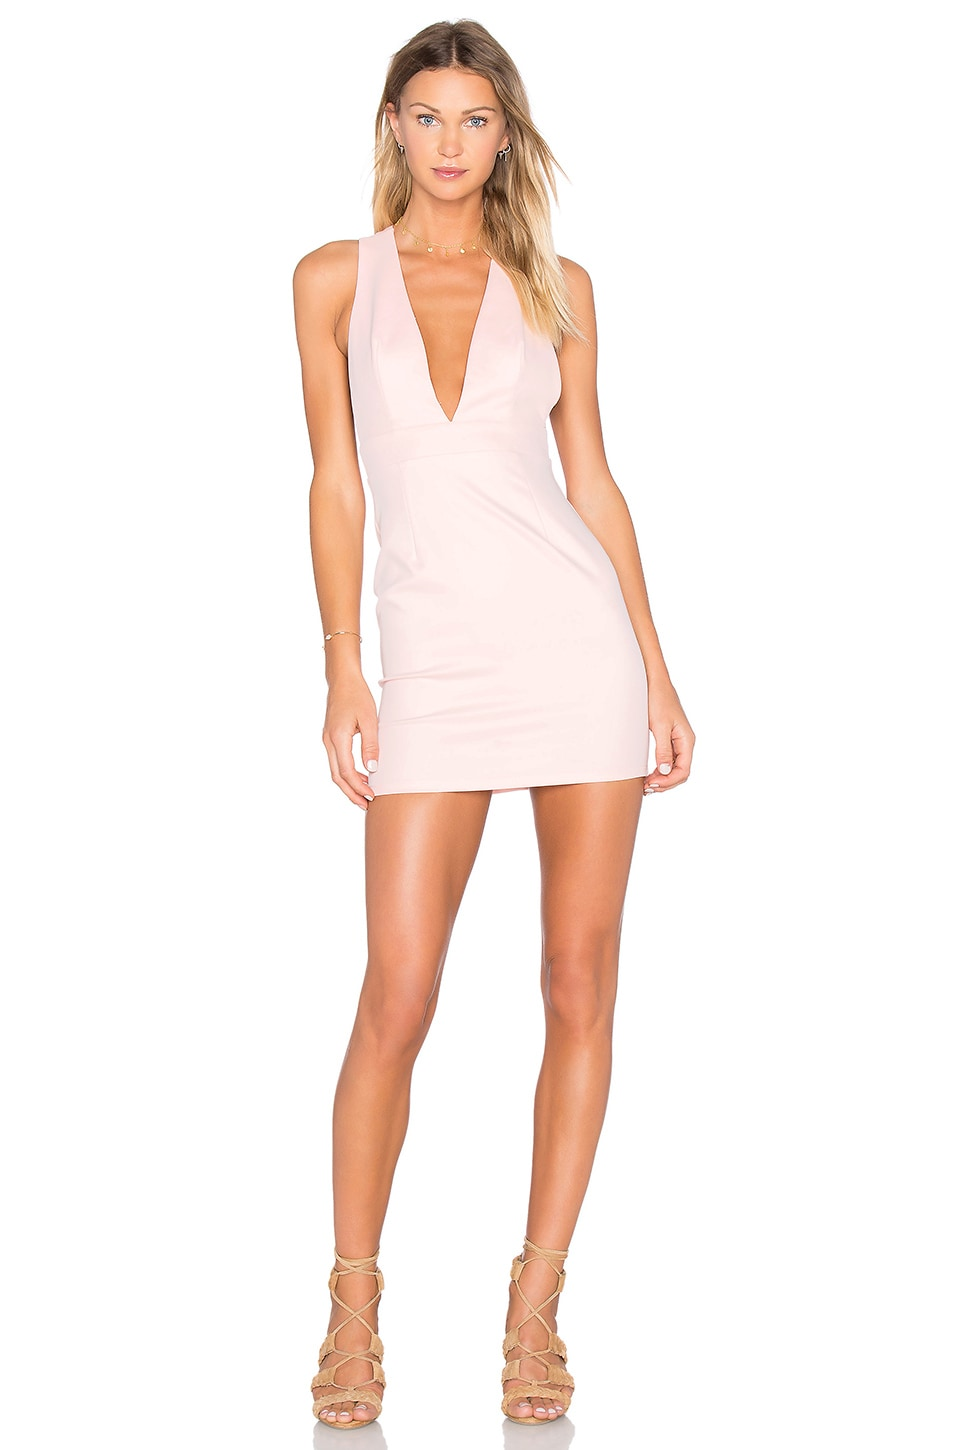 RISE OF DAWN Not This Time Dress in Blush